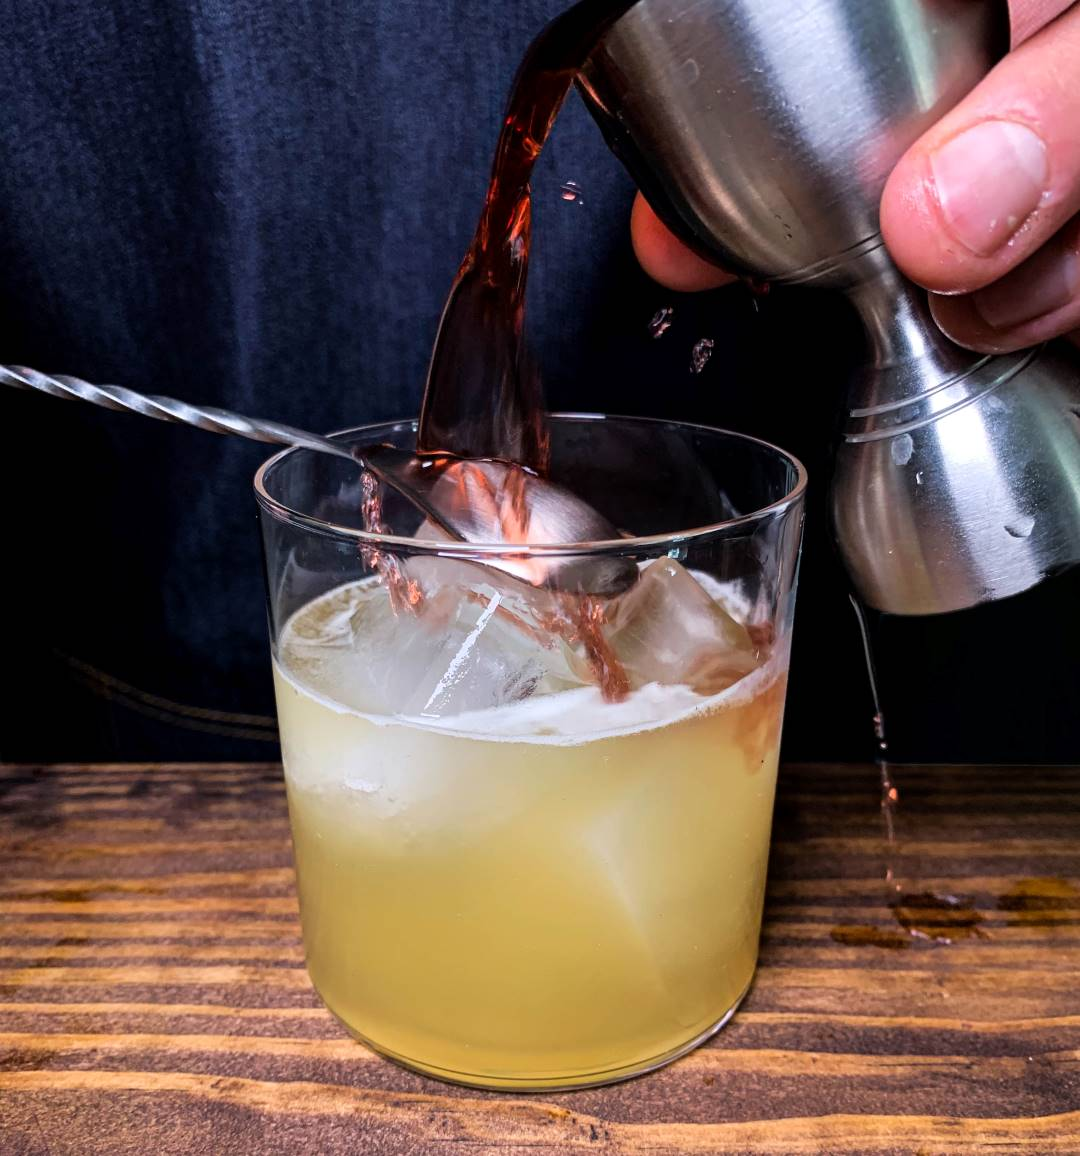 Red wine being poured on top of a whiskey sour making it into a New York Sour cocktail.